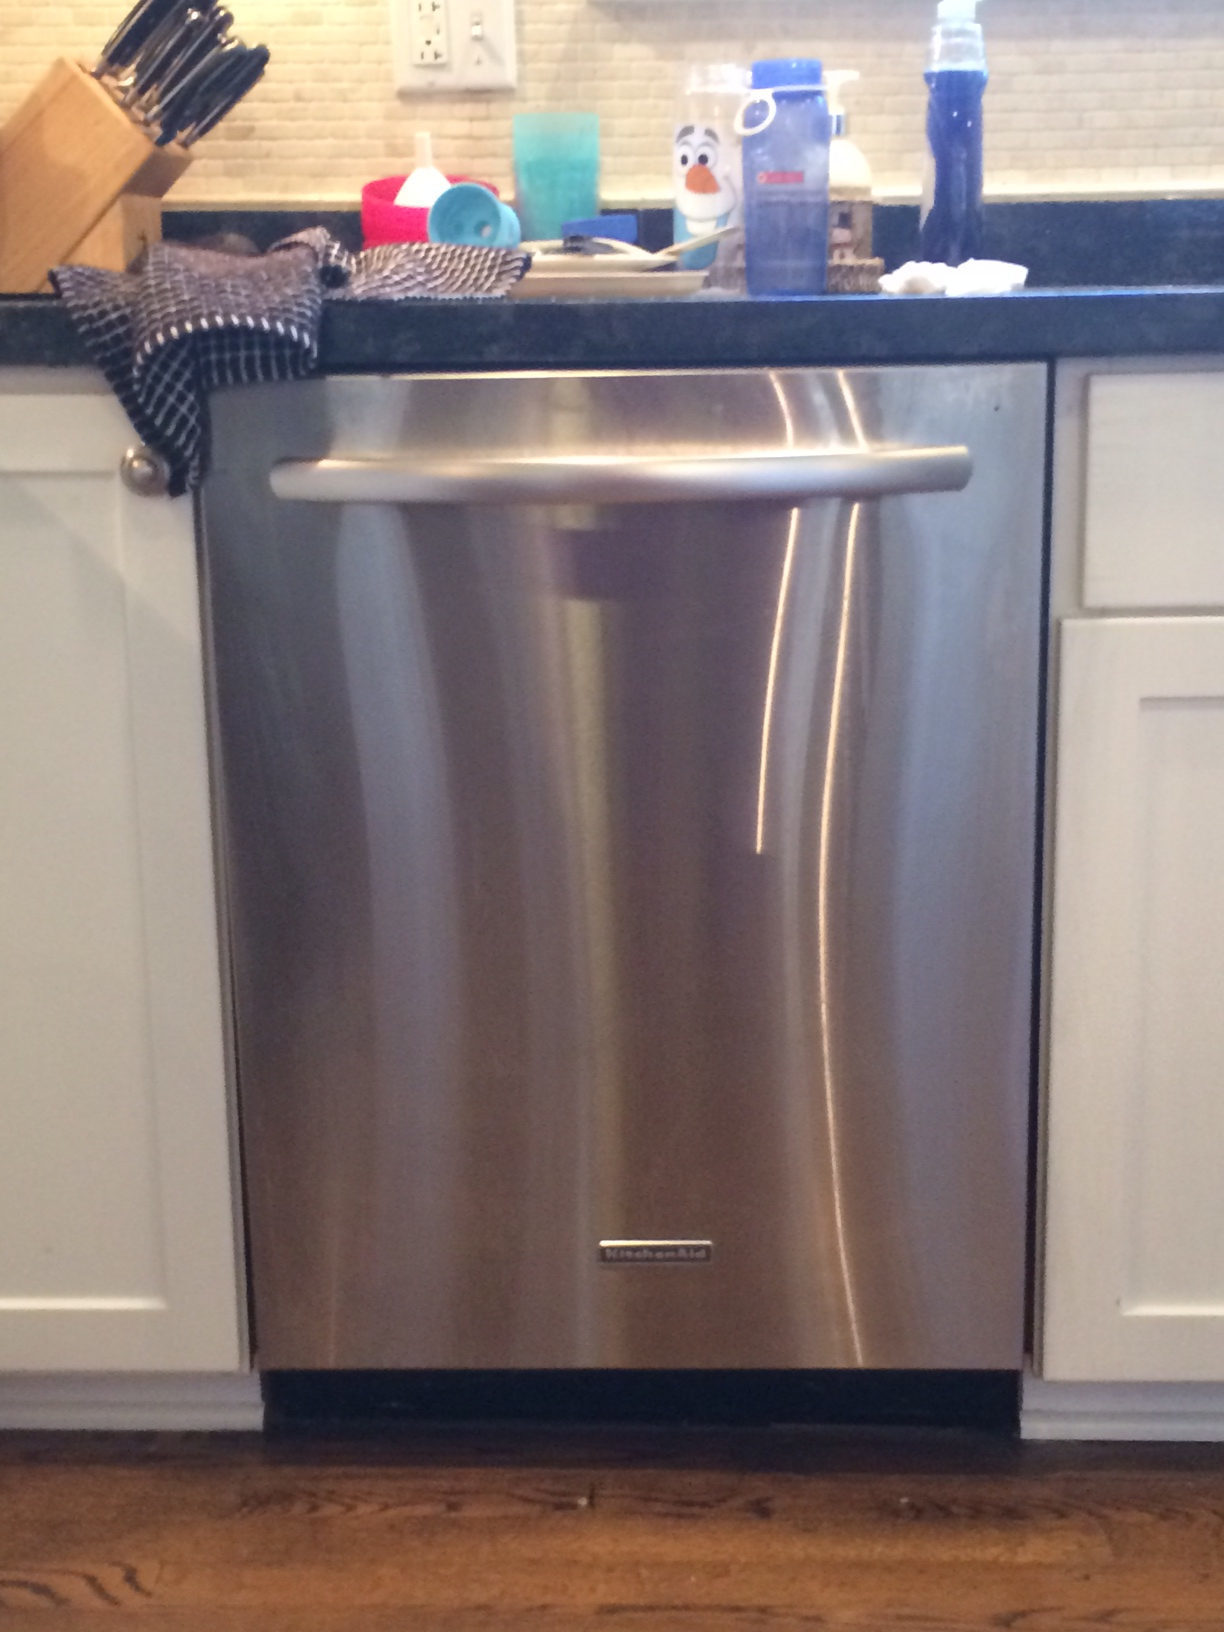 kitchen aid dishwasher reviews hotels with kitchens in waikiki top 787 complaints and about kitchenaid